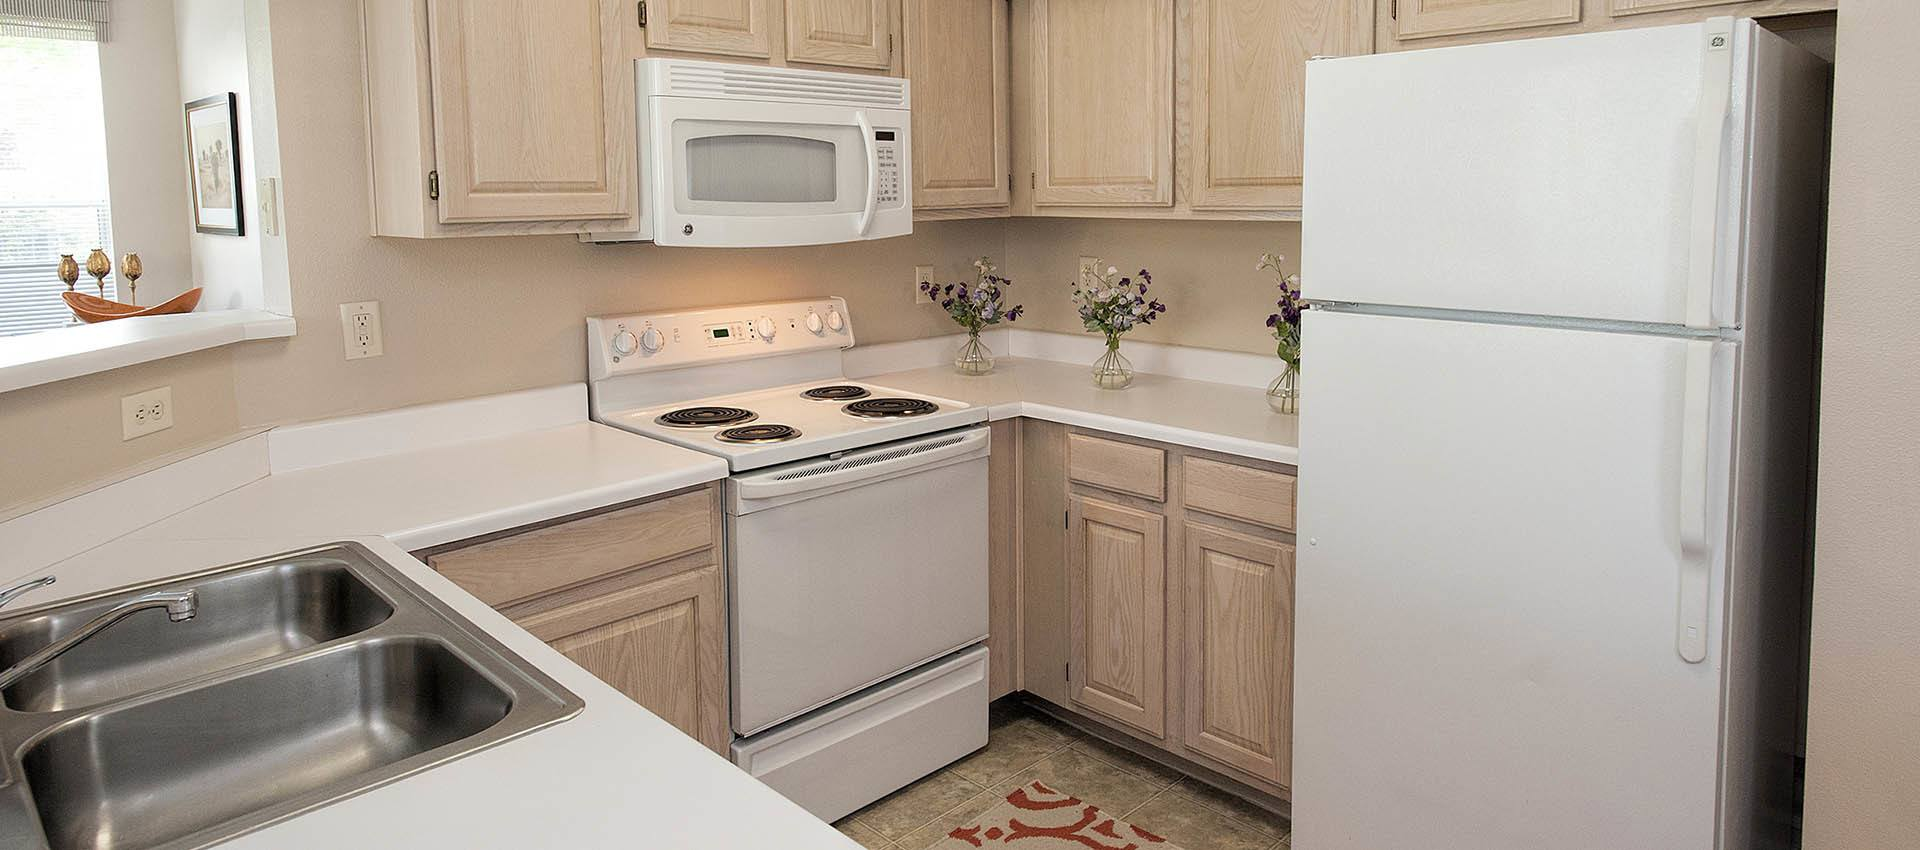 Standard kitchen at The Vintage at South Meadows Condominium Rentals in Reno